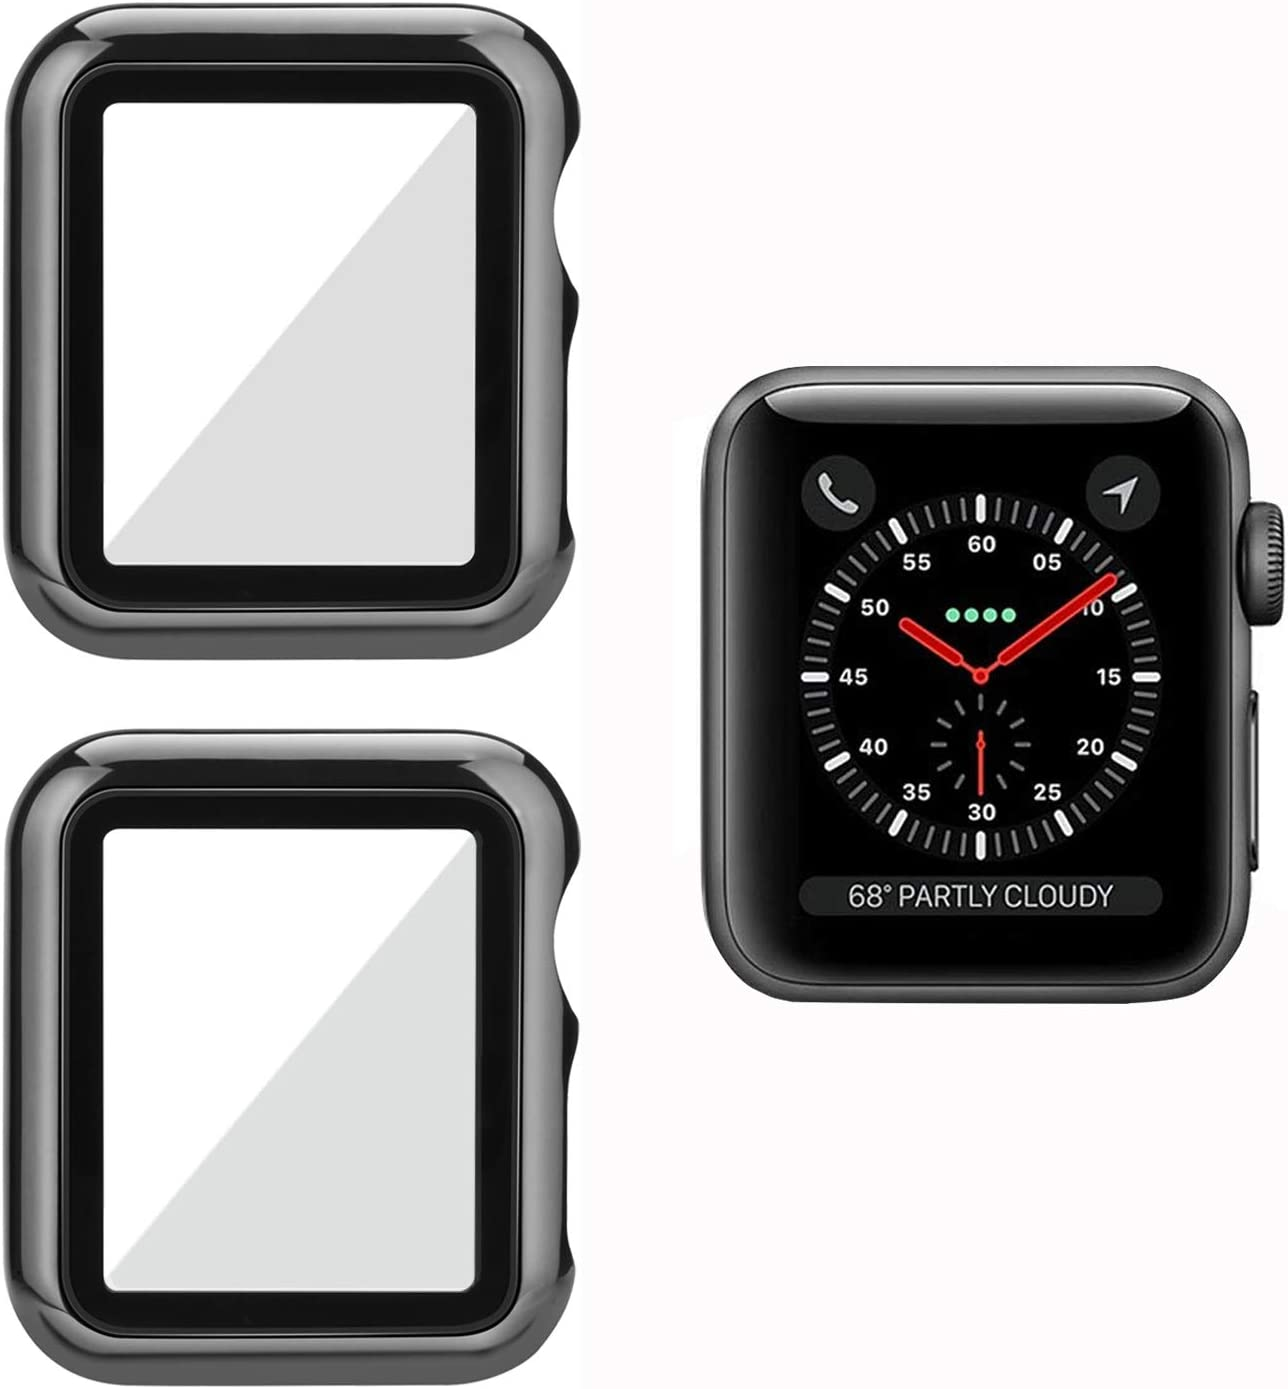 MAIRUIX Compatible with Apple Watch Case [2 Pack] 40mm Screen Protector Built-in Tempered Glass Cover Bumper Shock-Proof Slim Ultra-thin Lightweight HD Clear Overall Guard for Apple Watch Series 6/5/4